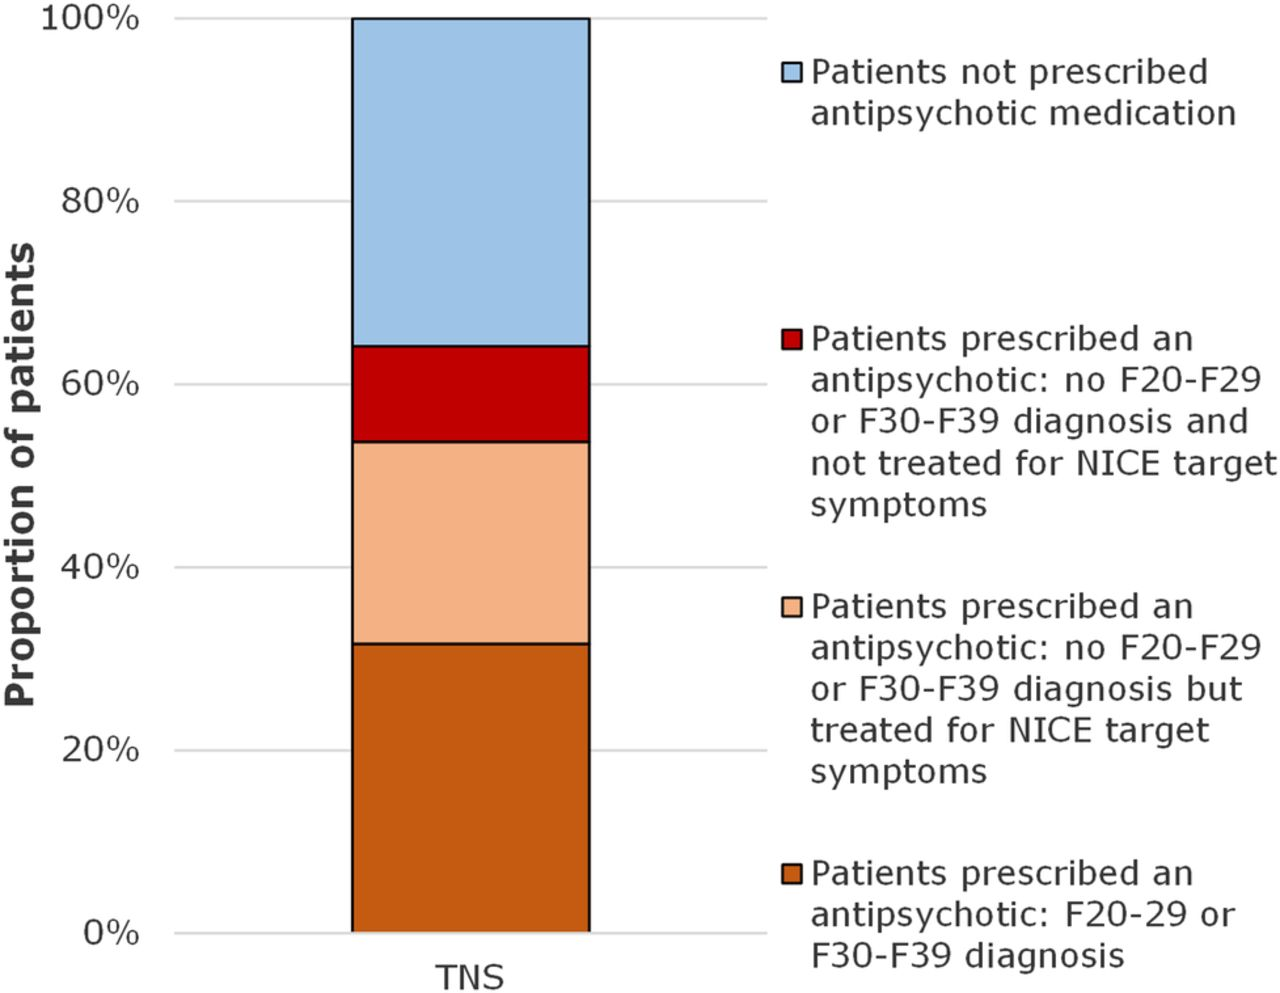 Prescribing Antipsychotic Medication >> Quality Of Prescribing Of Antipsychotic Medication For People With